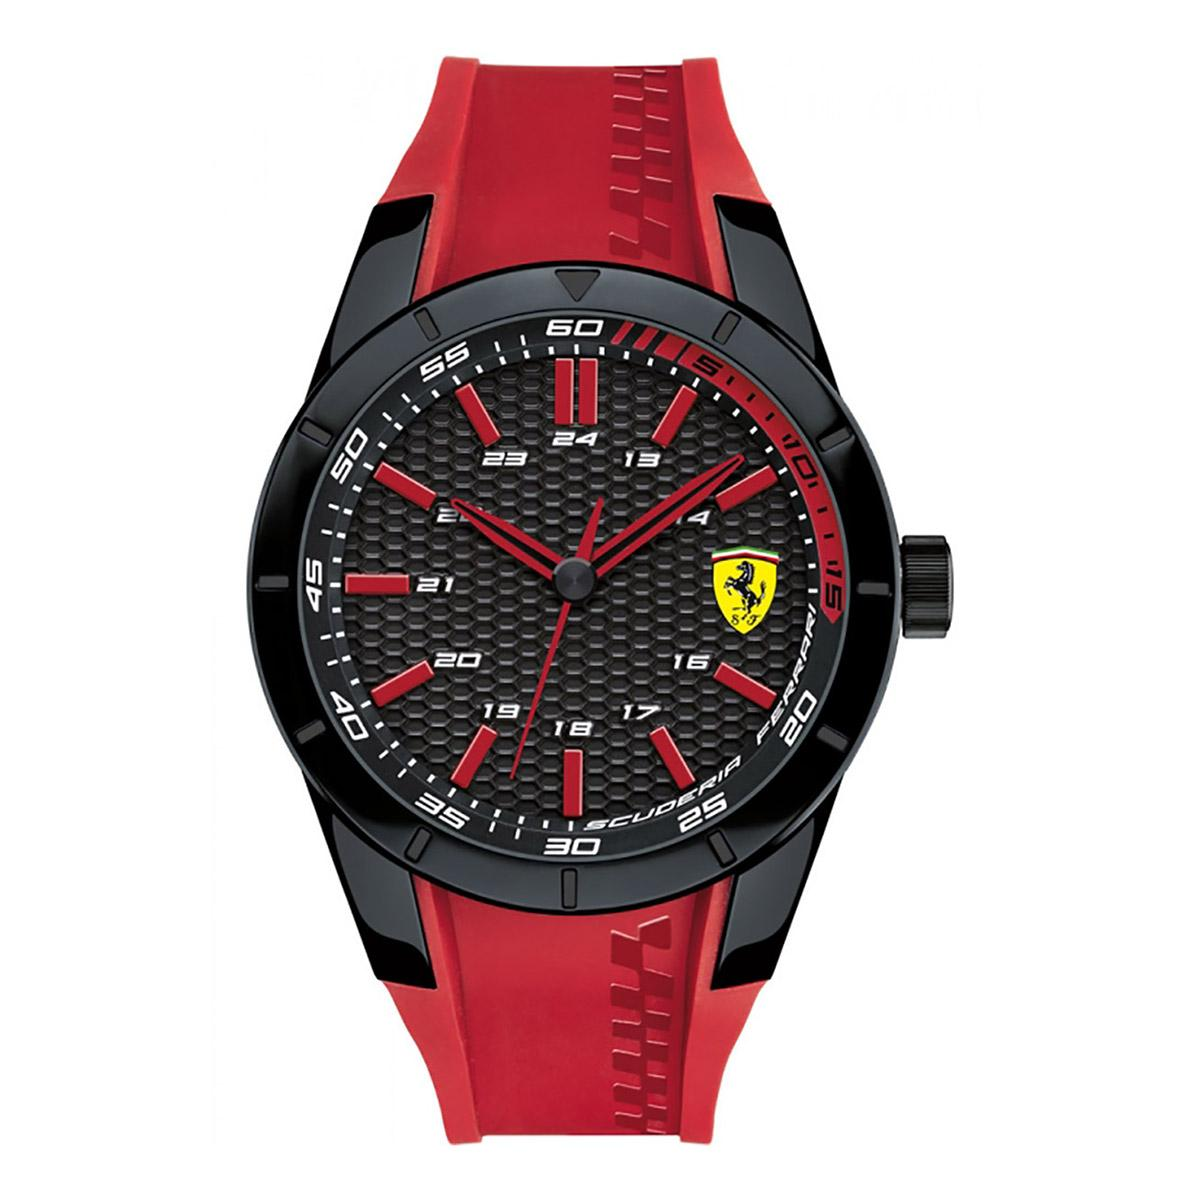 new ferrari red g p s on carousell ga brand casio watches kids watch authentic fashion men shock gshock